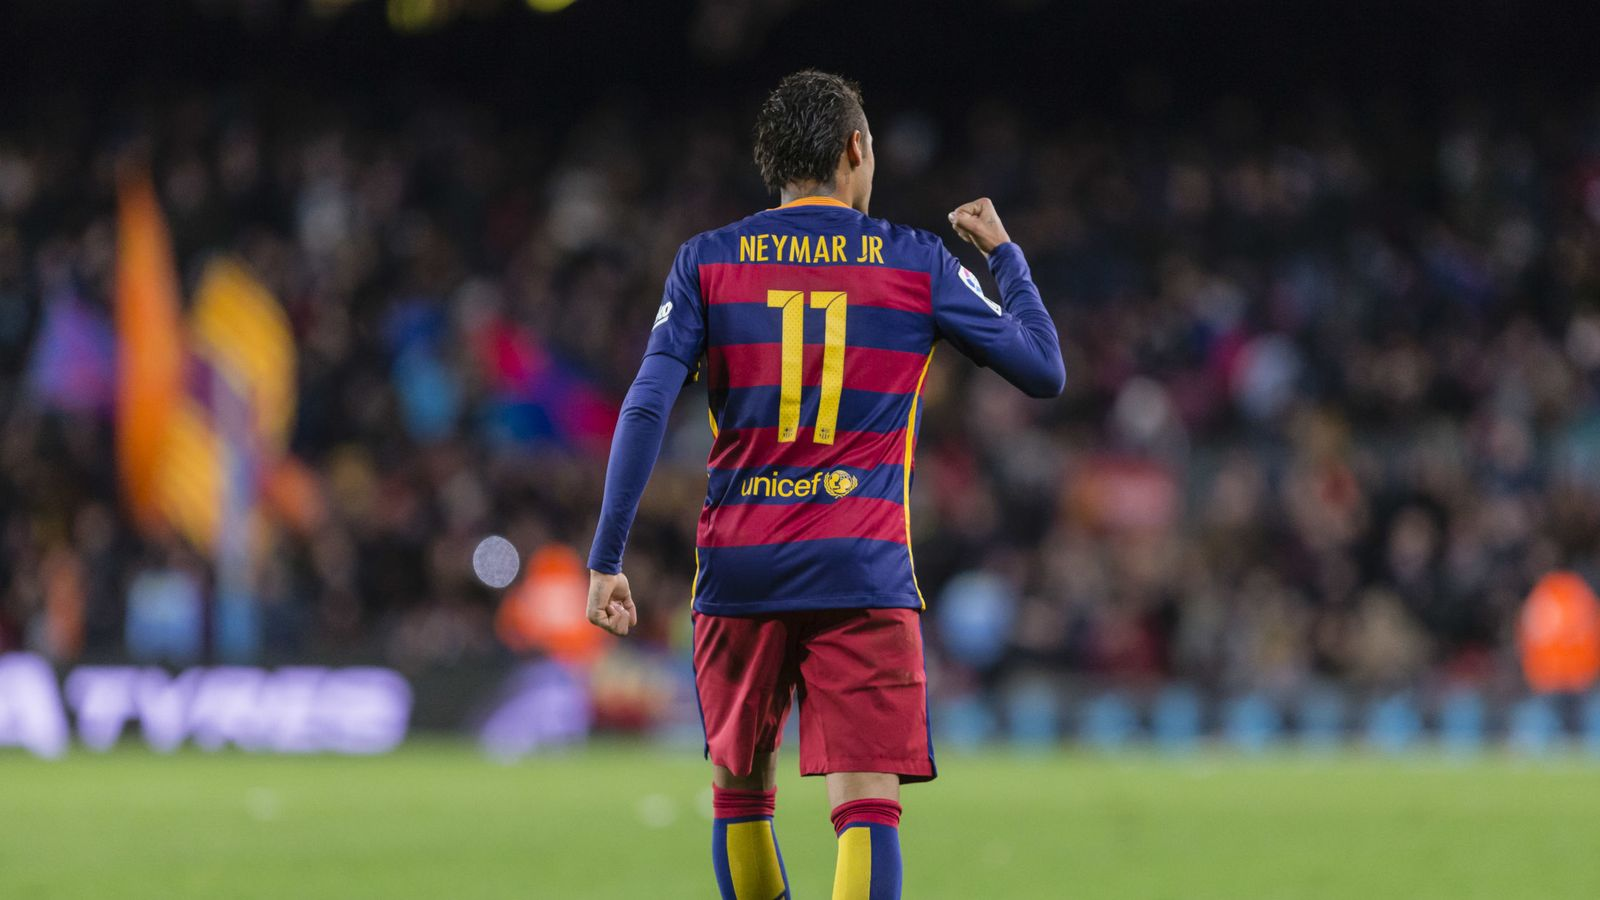 Foto: Neymar celebra un gol en el Camp Nou (Cordon Press).